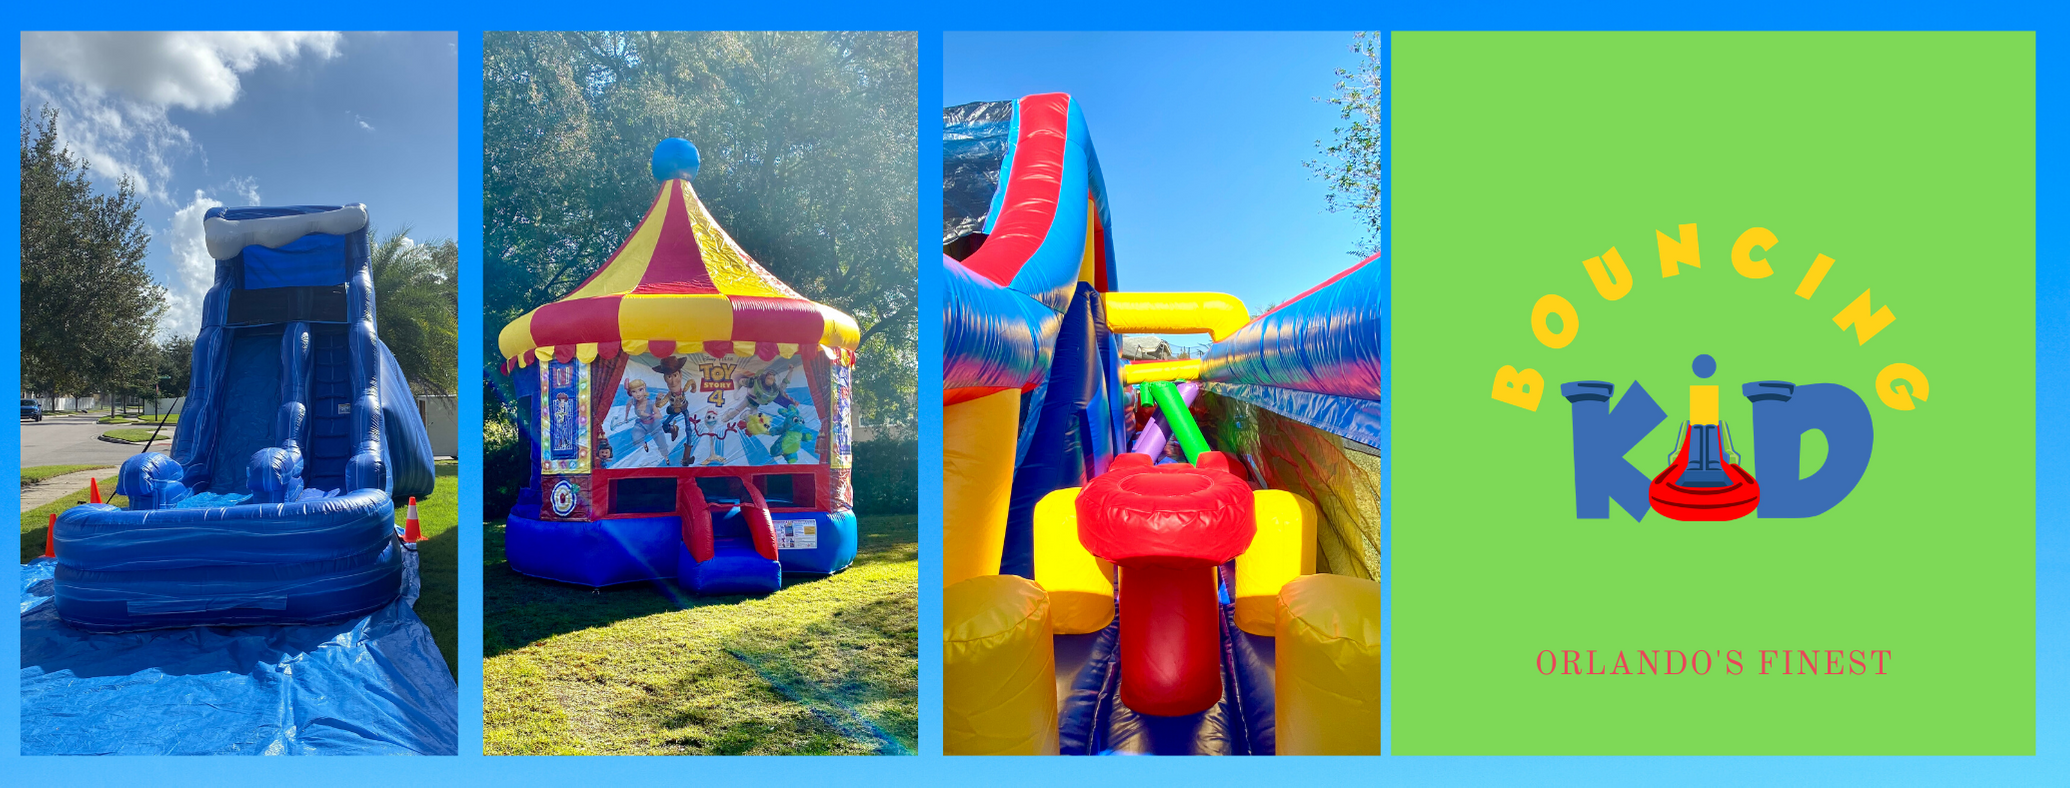 Waterslide, Toy Story 4 Bounce House, 28 Obstacle Course and Bouncing Kid Logo